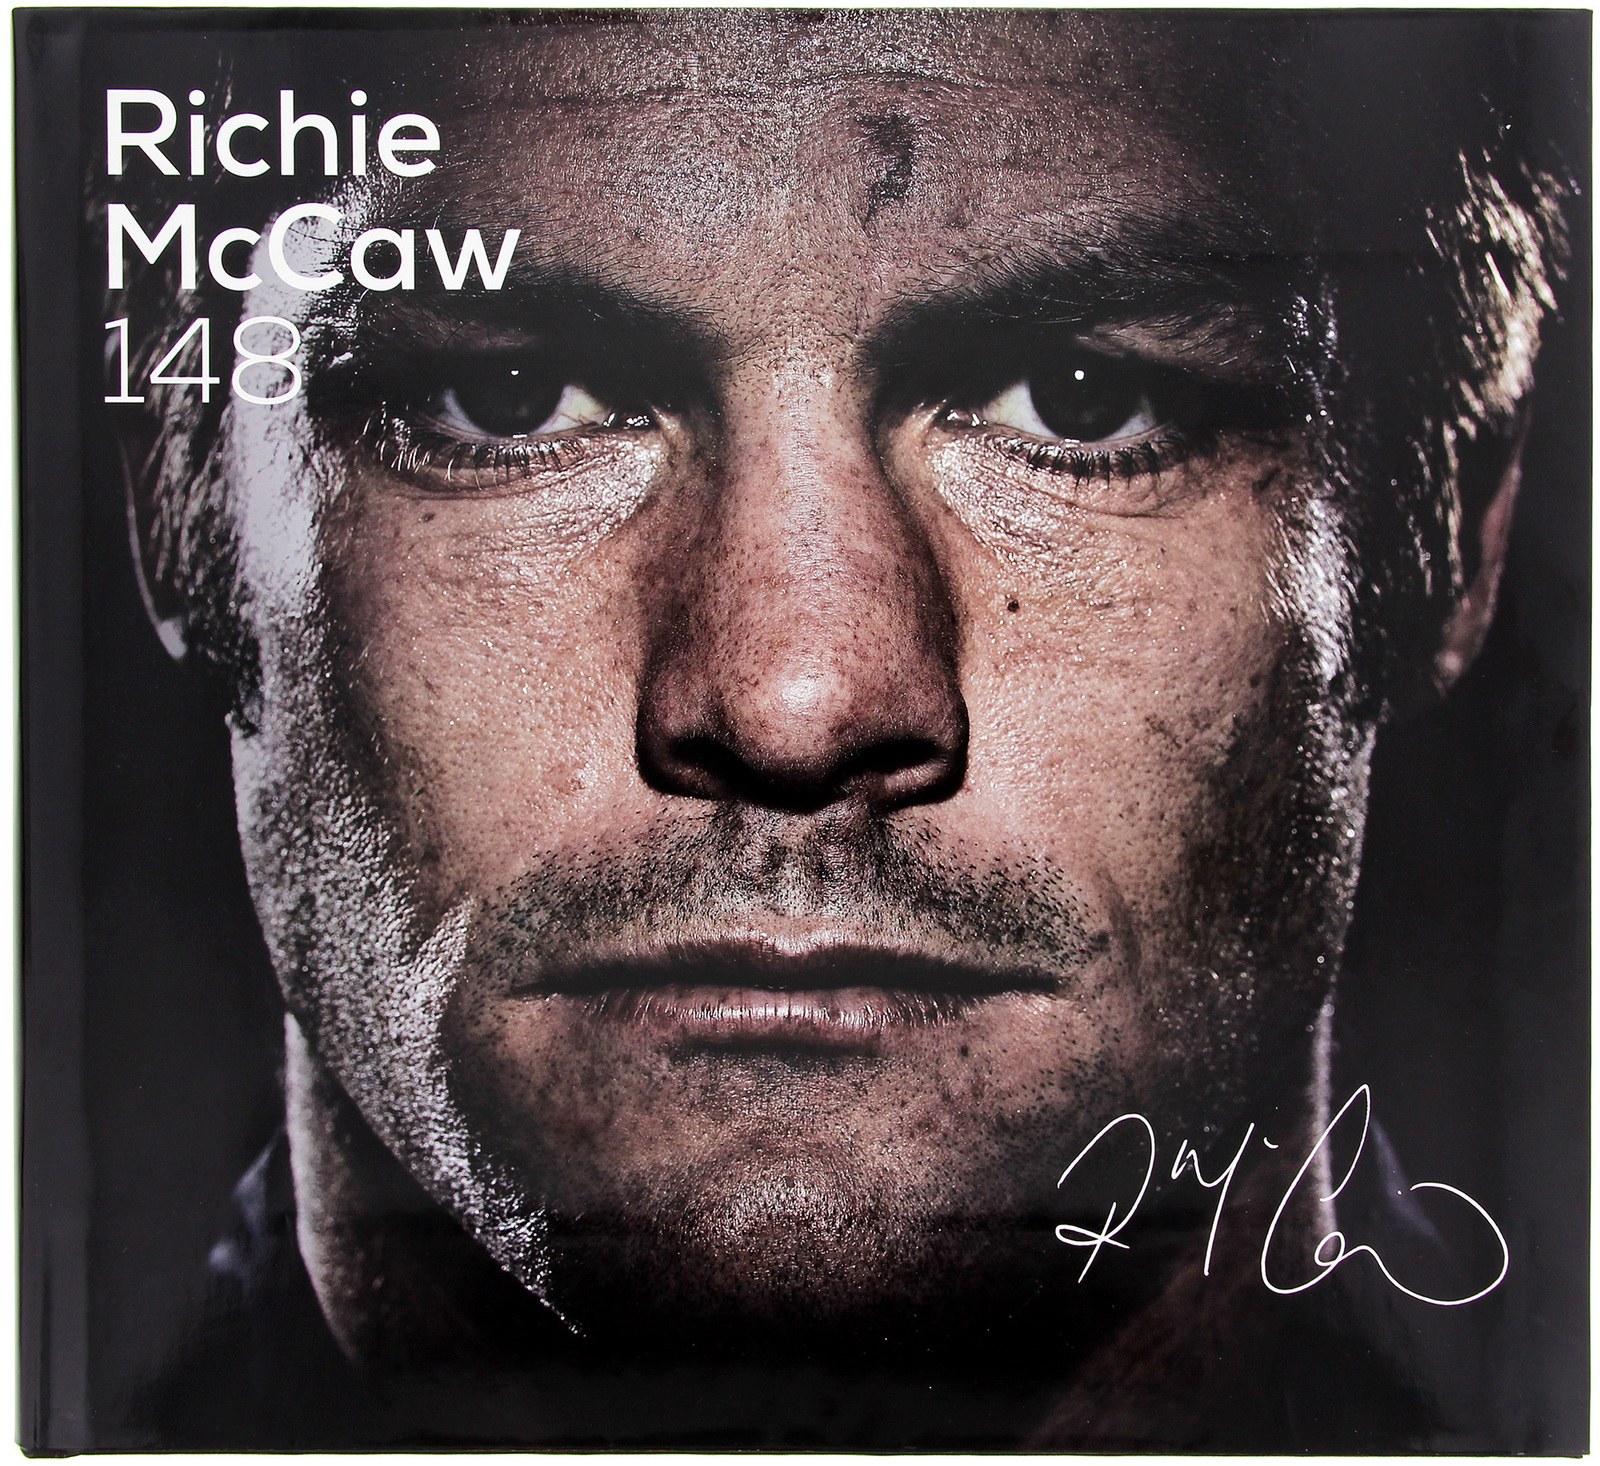 richie mccaw essay All blacks legend richie mccaw talks us through rwc 2015 final we sat down with one of the greatest @allblacks of all time to talk in depth about that rwc 2015 final over to you, richie mccaw.